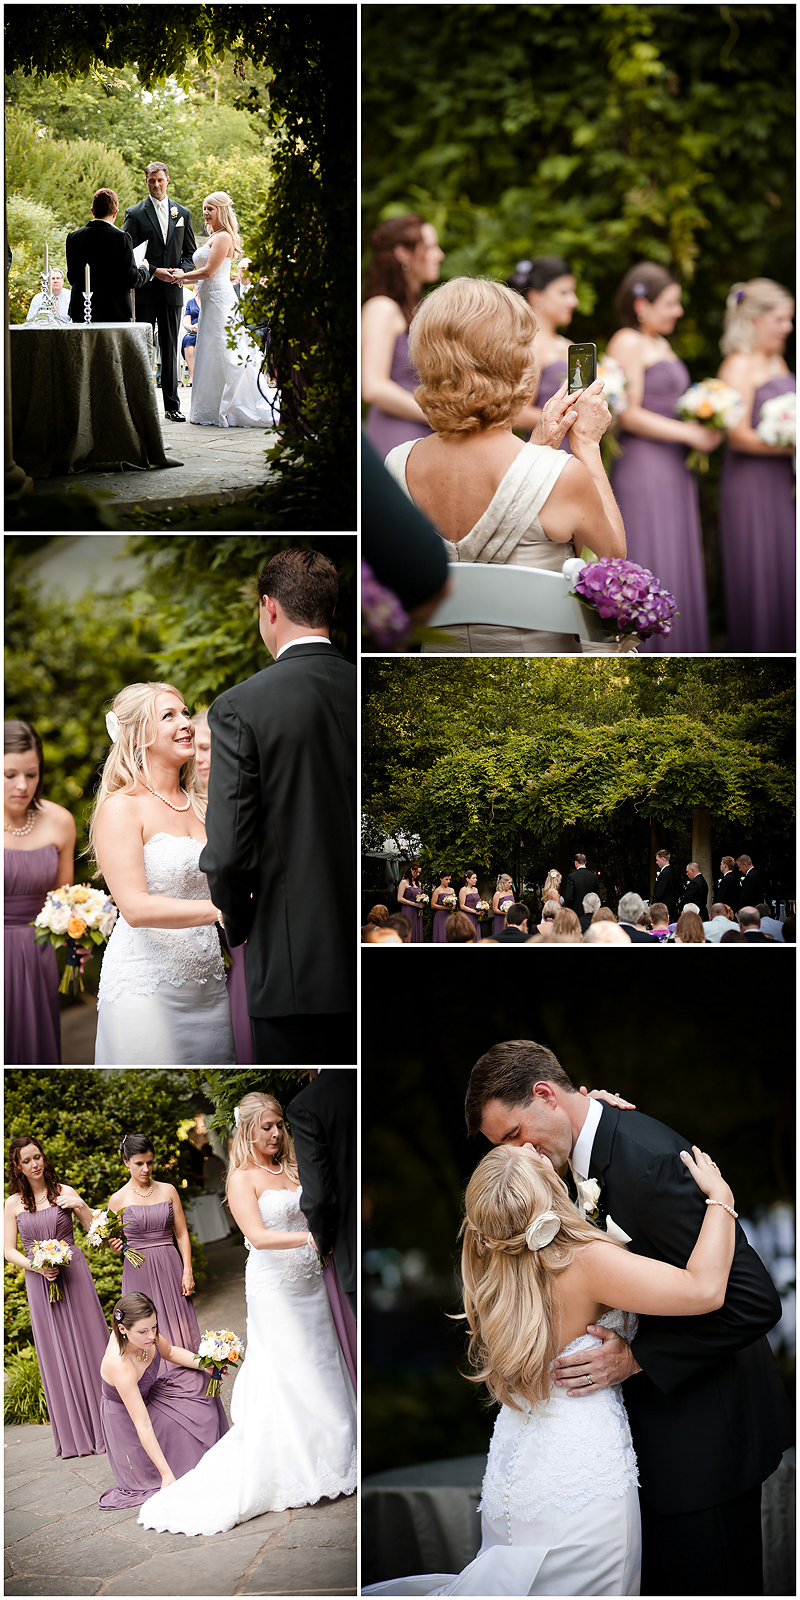 Mandy and Brandon Wedding11 Mandy & Brandon | Cator Woolford Gardens | Atlanta, GA